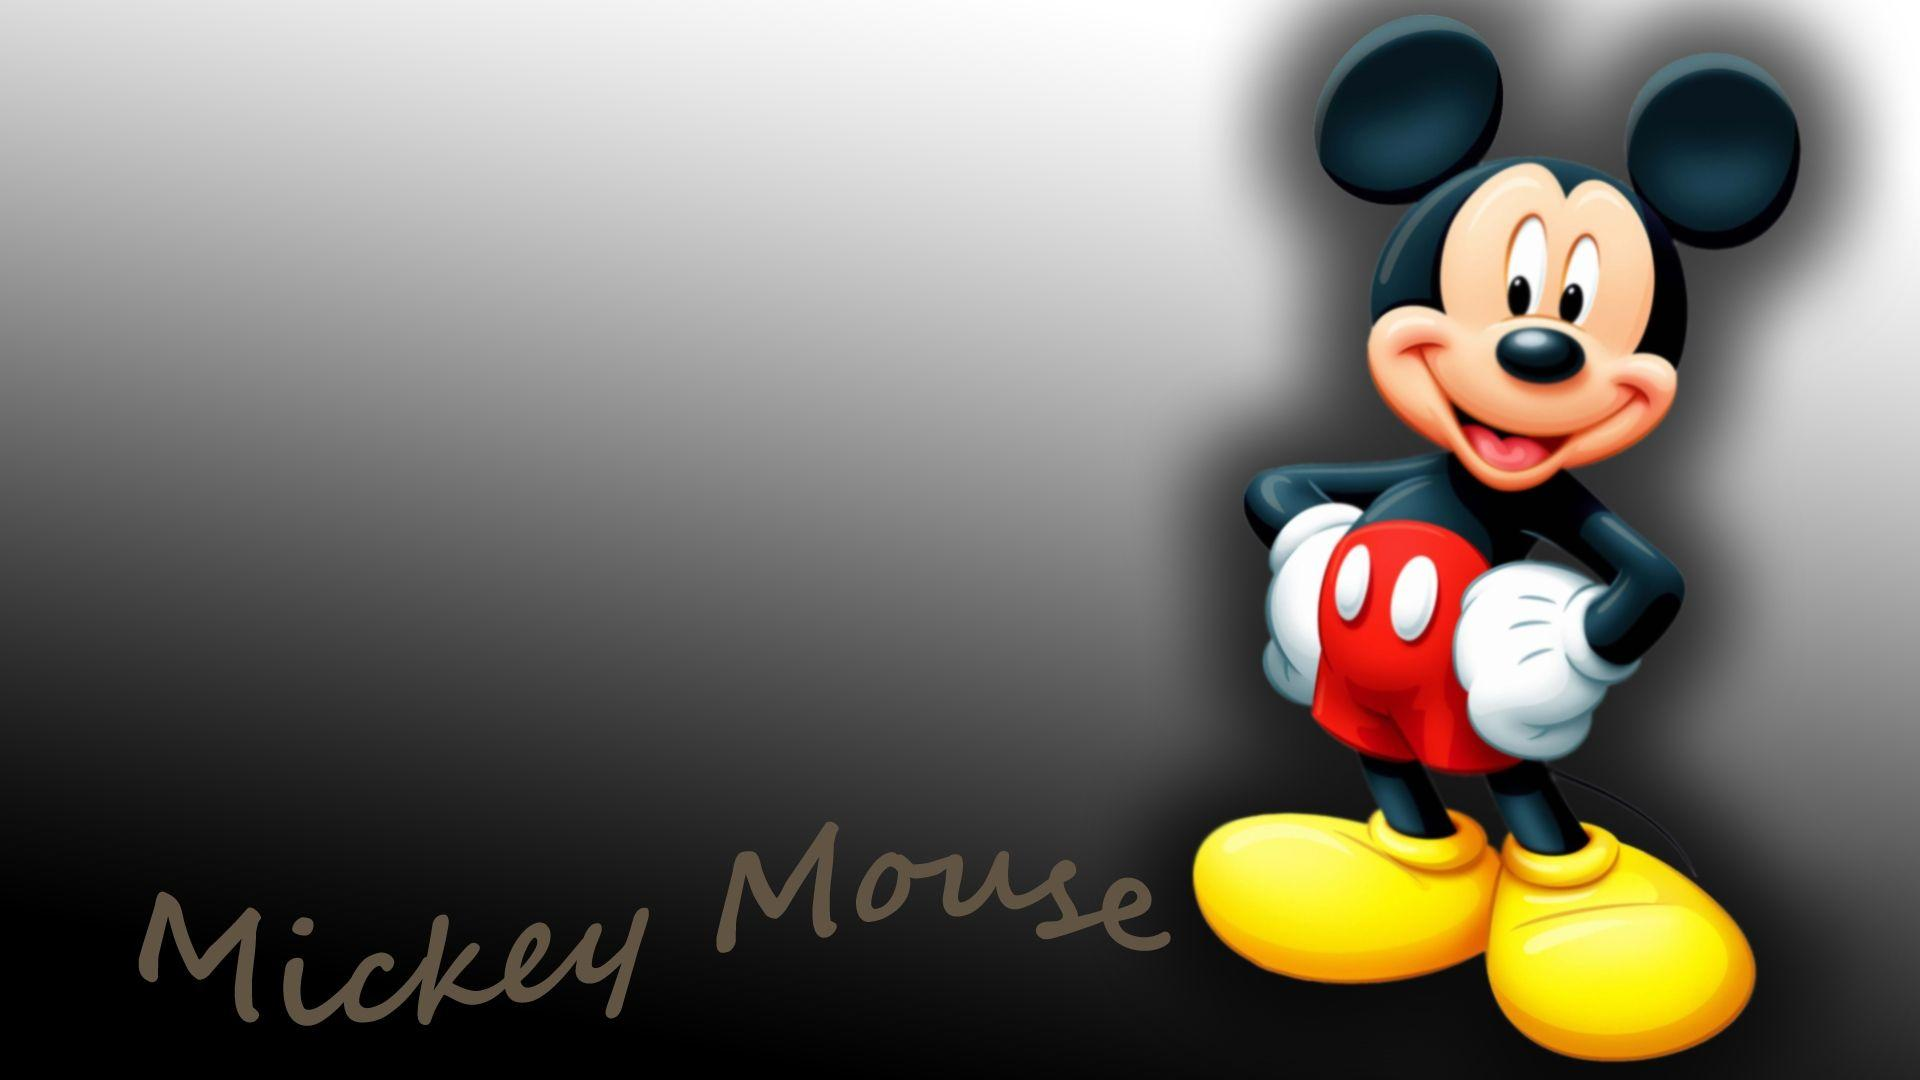 mickey mouse hd wallpapers - wallpaper cave